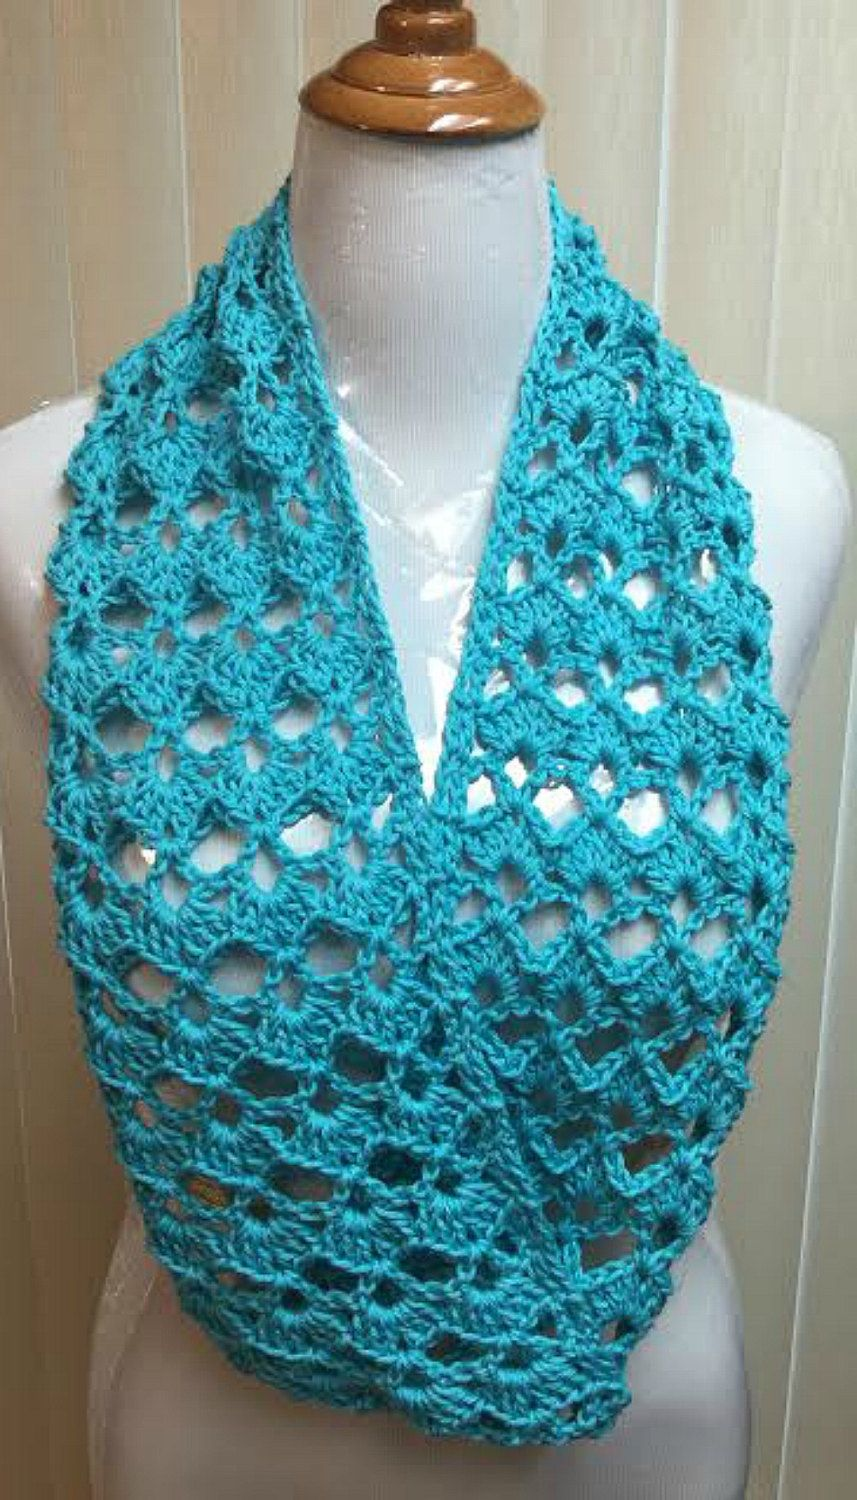 Crochet Scarf, Turquoise, Blue, Infinity Scarf, Cotton, Spring ...